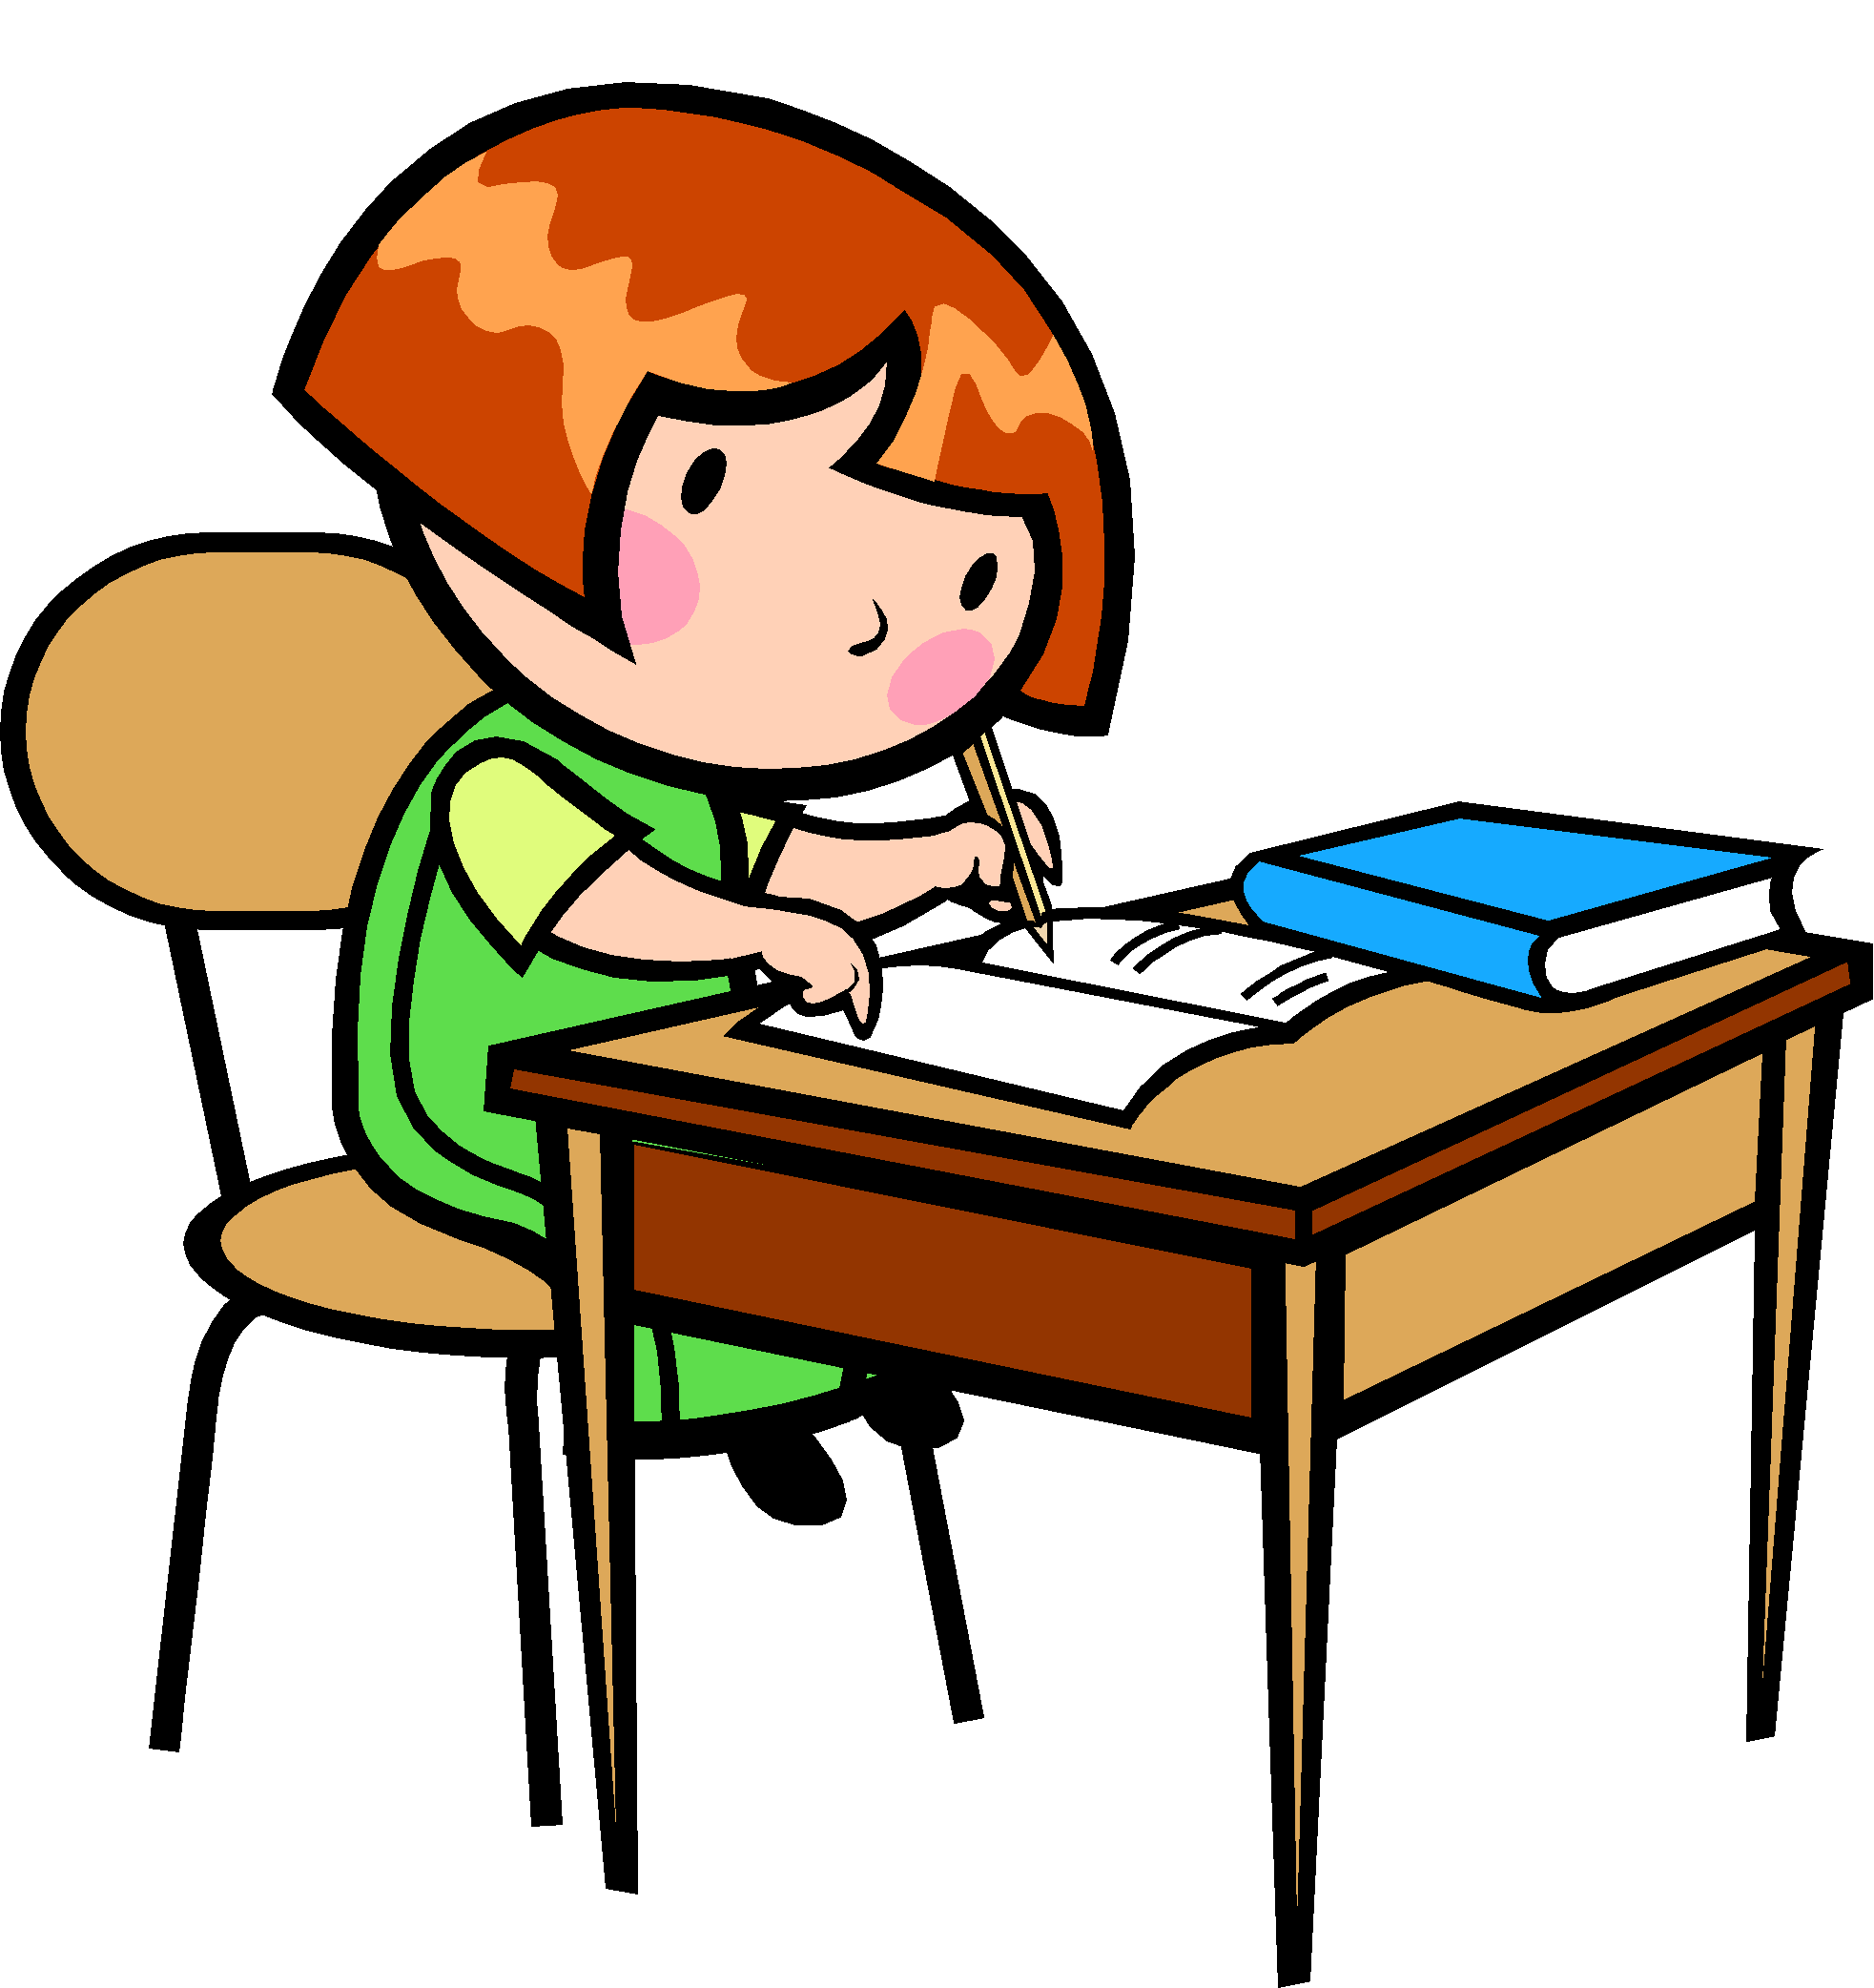 picture freeuse download Writer clipart kindergarten writing. Free images of children.